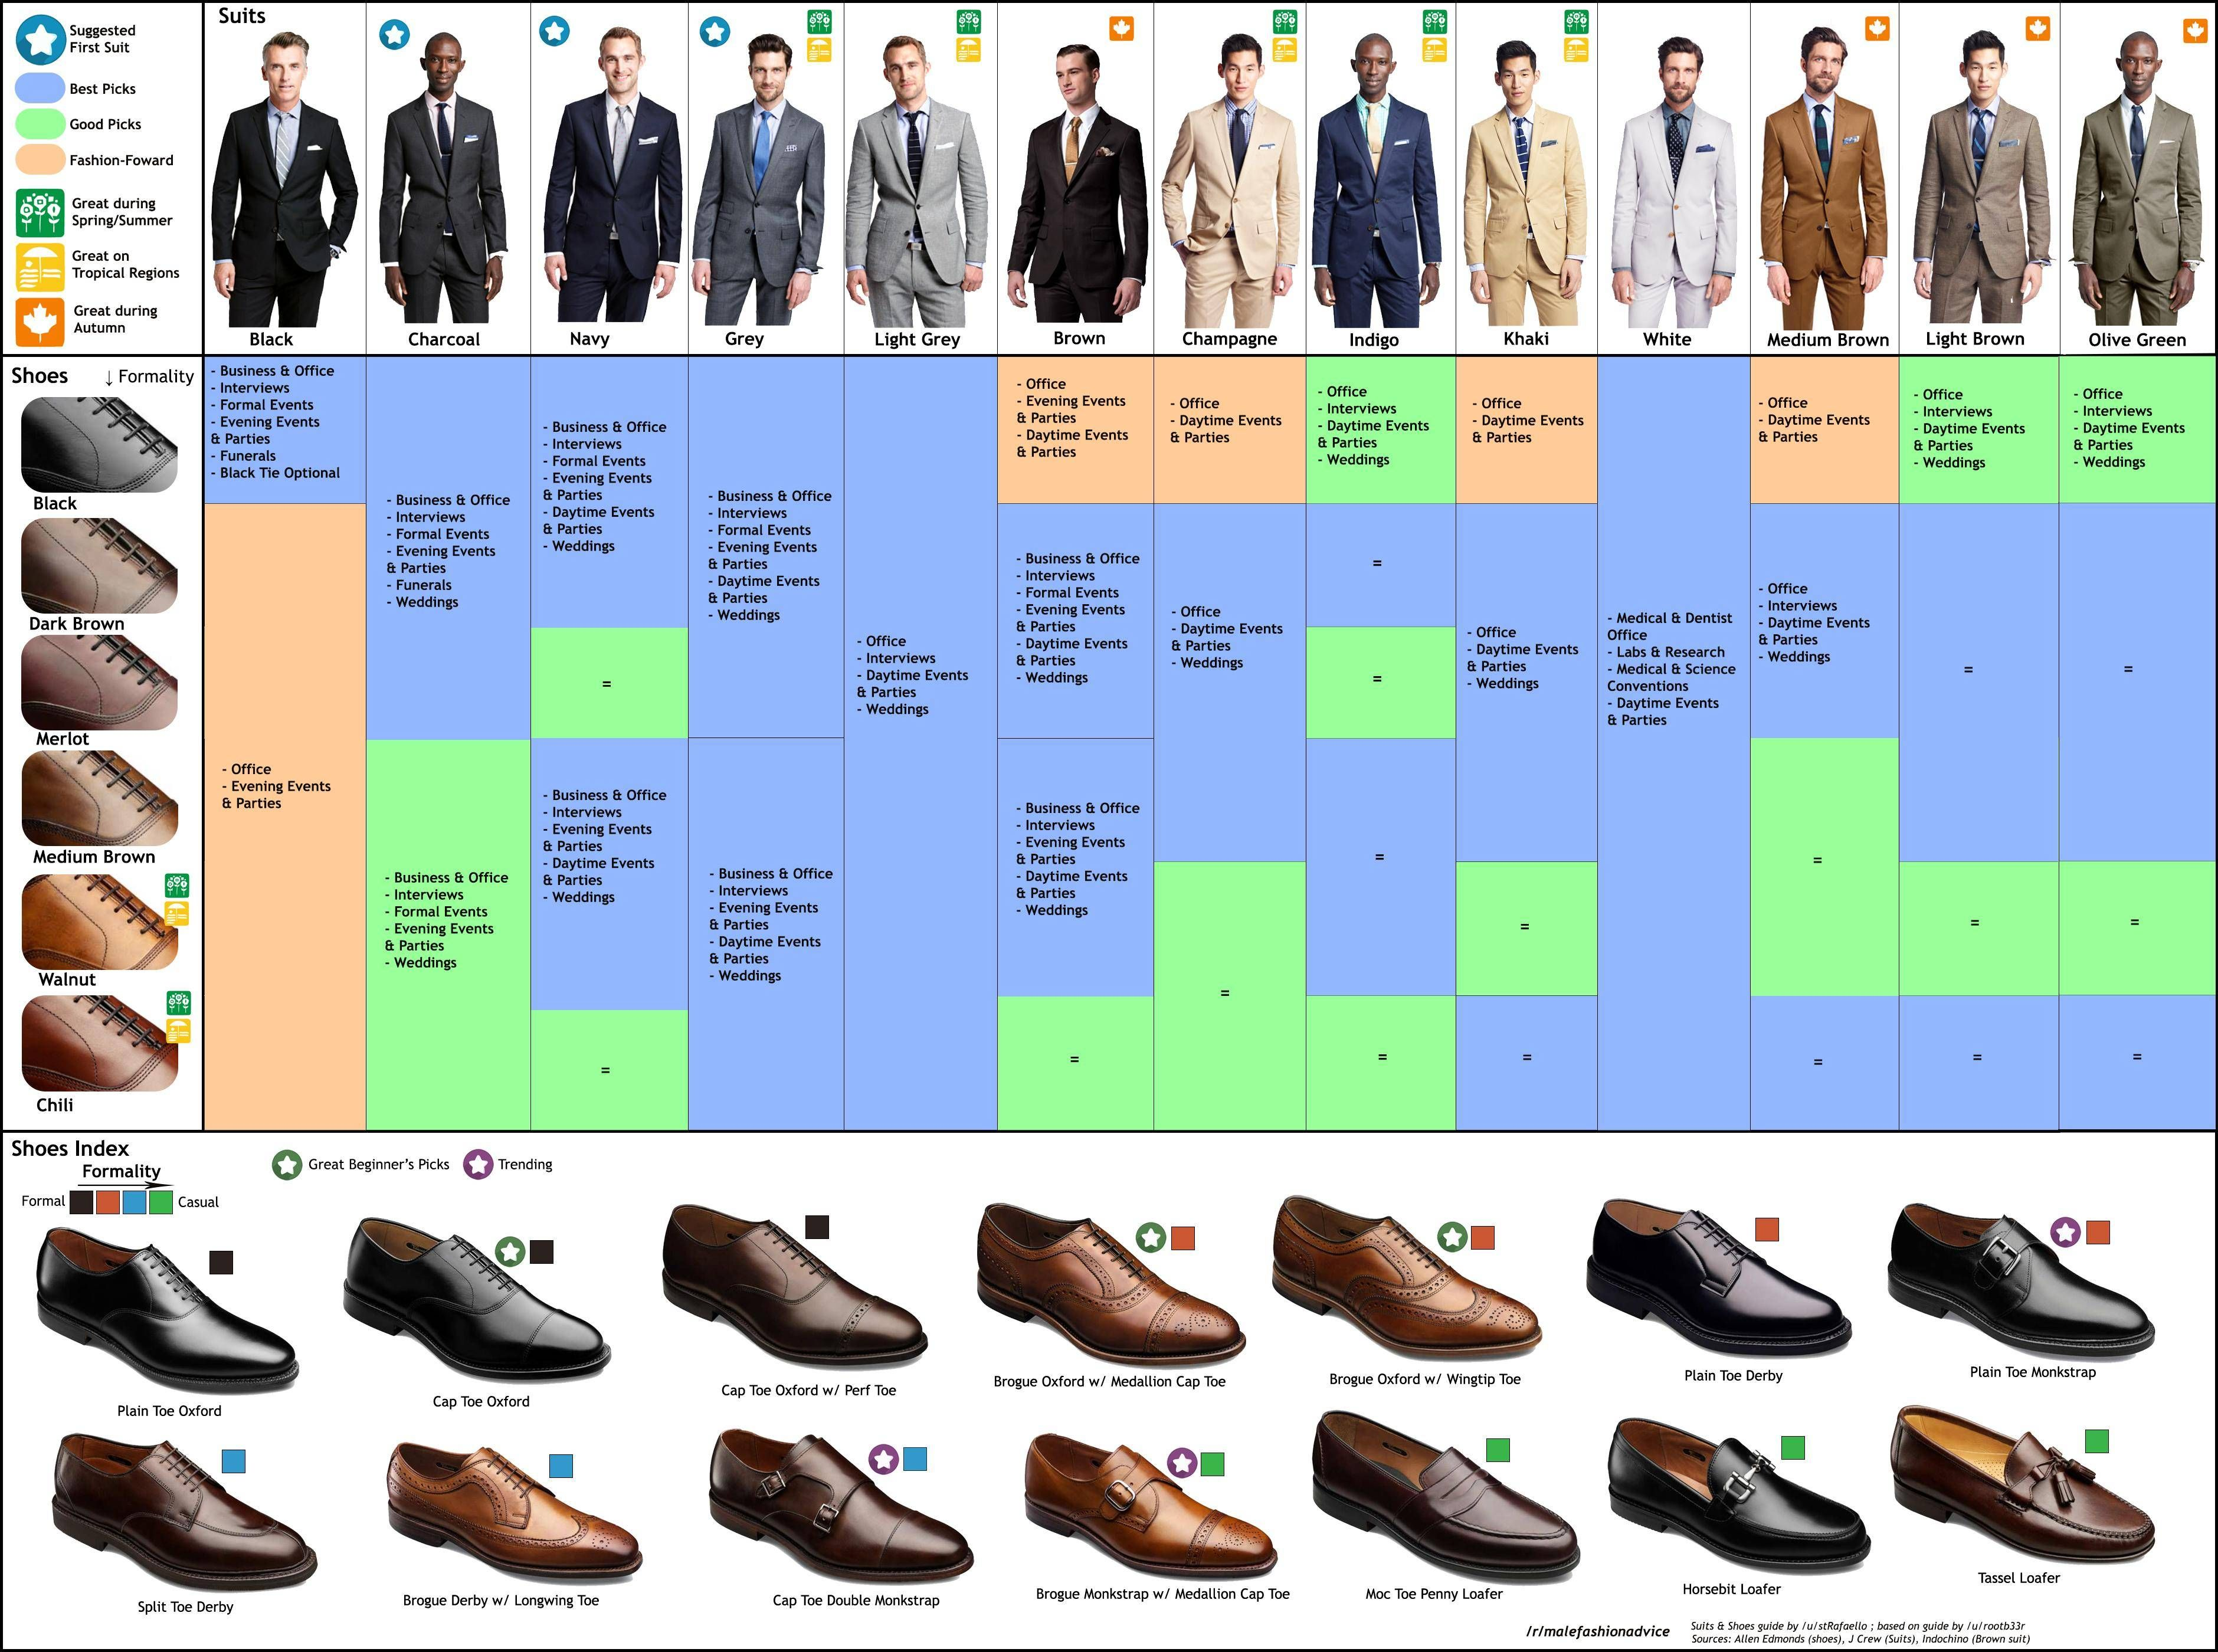 Updated my visual guide for Suits and Dress Shoes. WIP, feedback